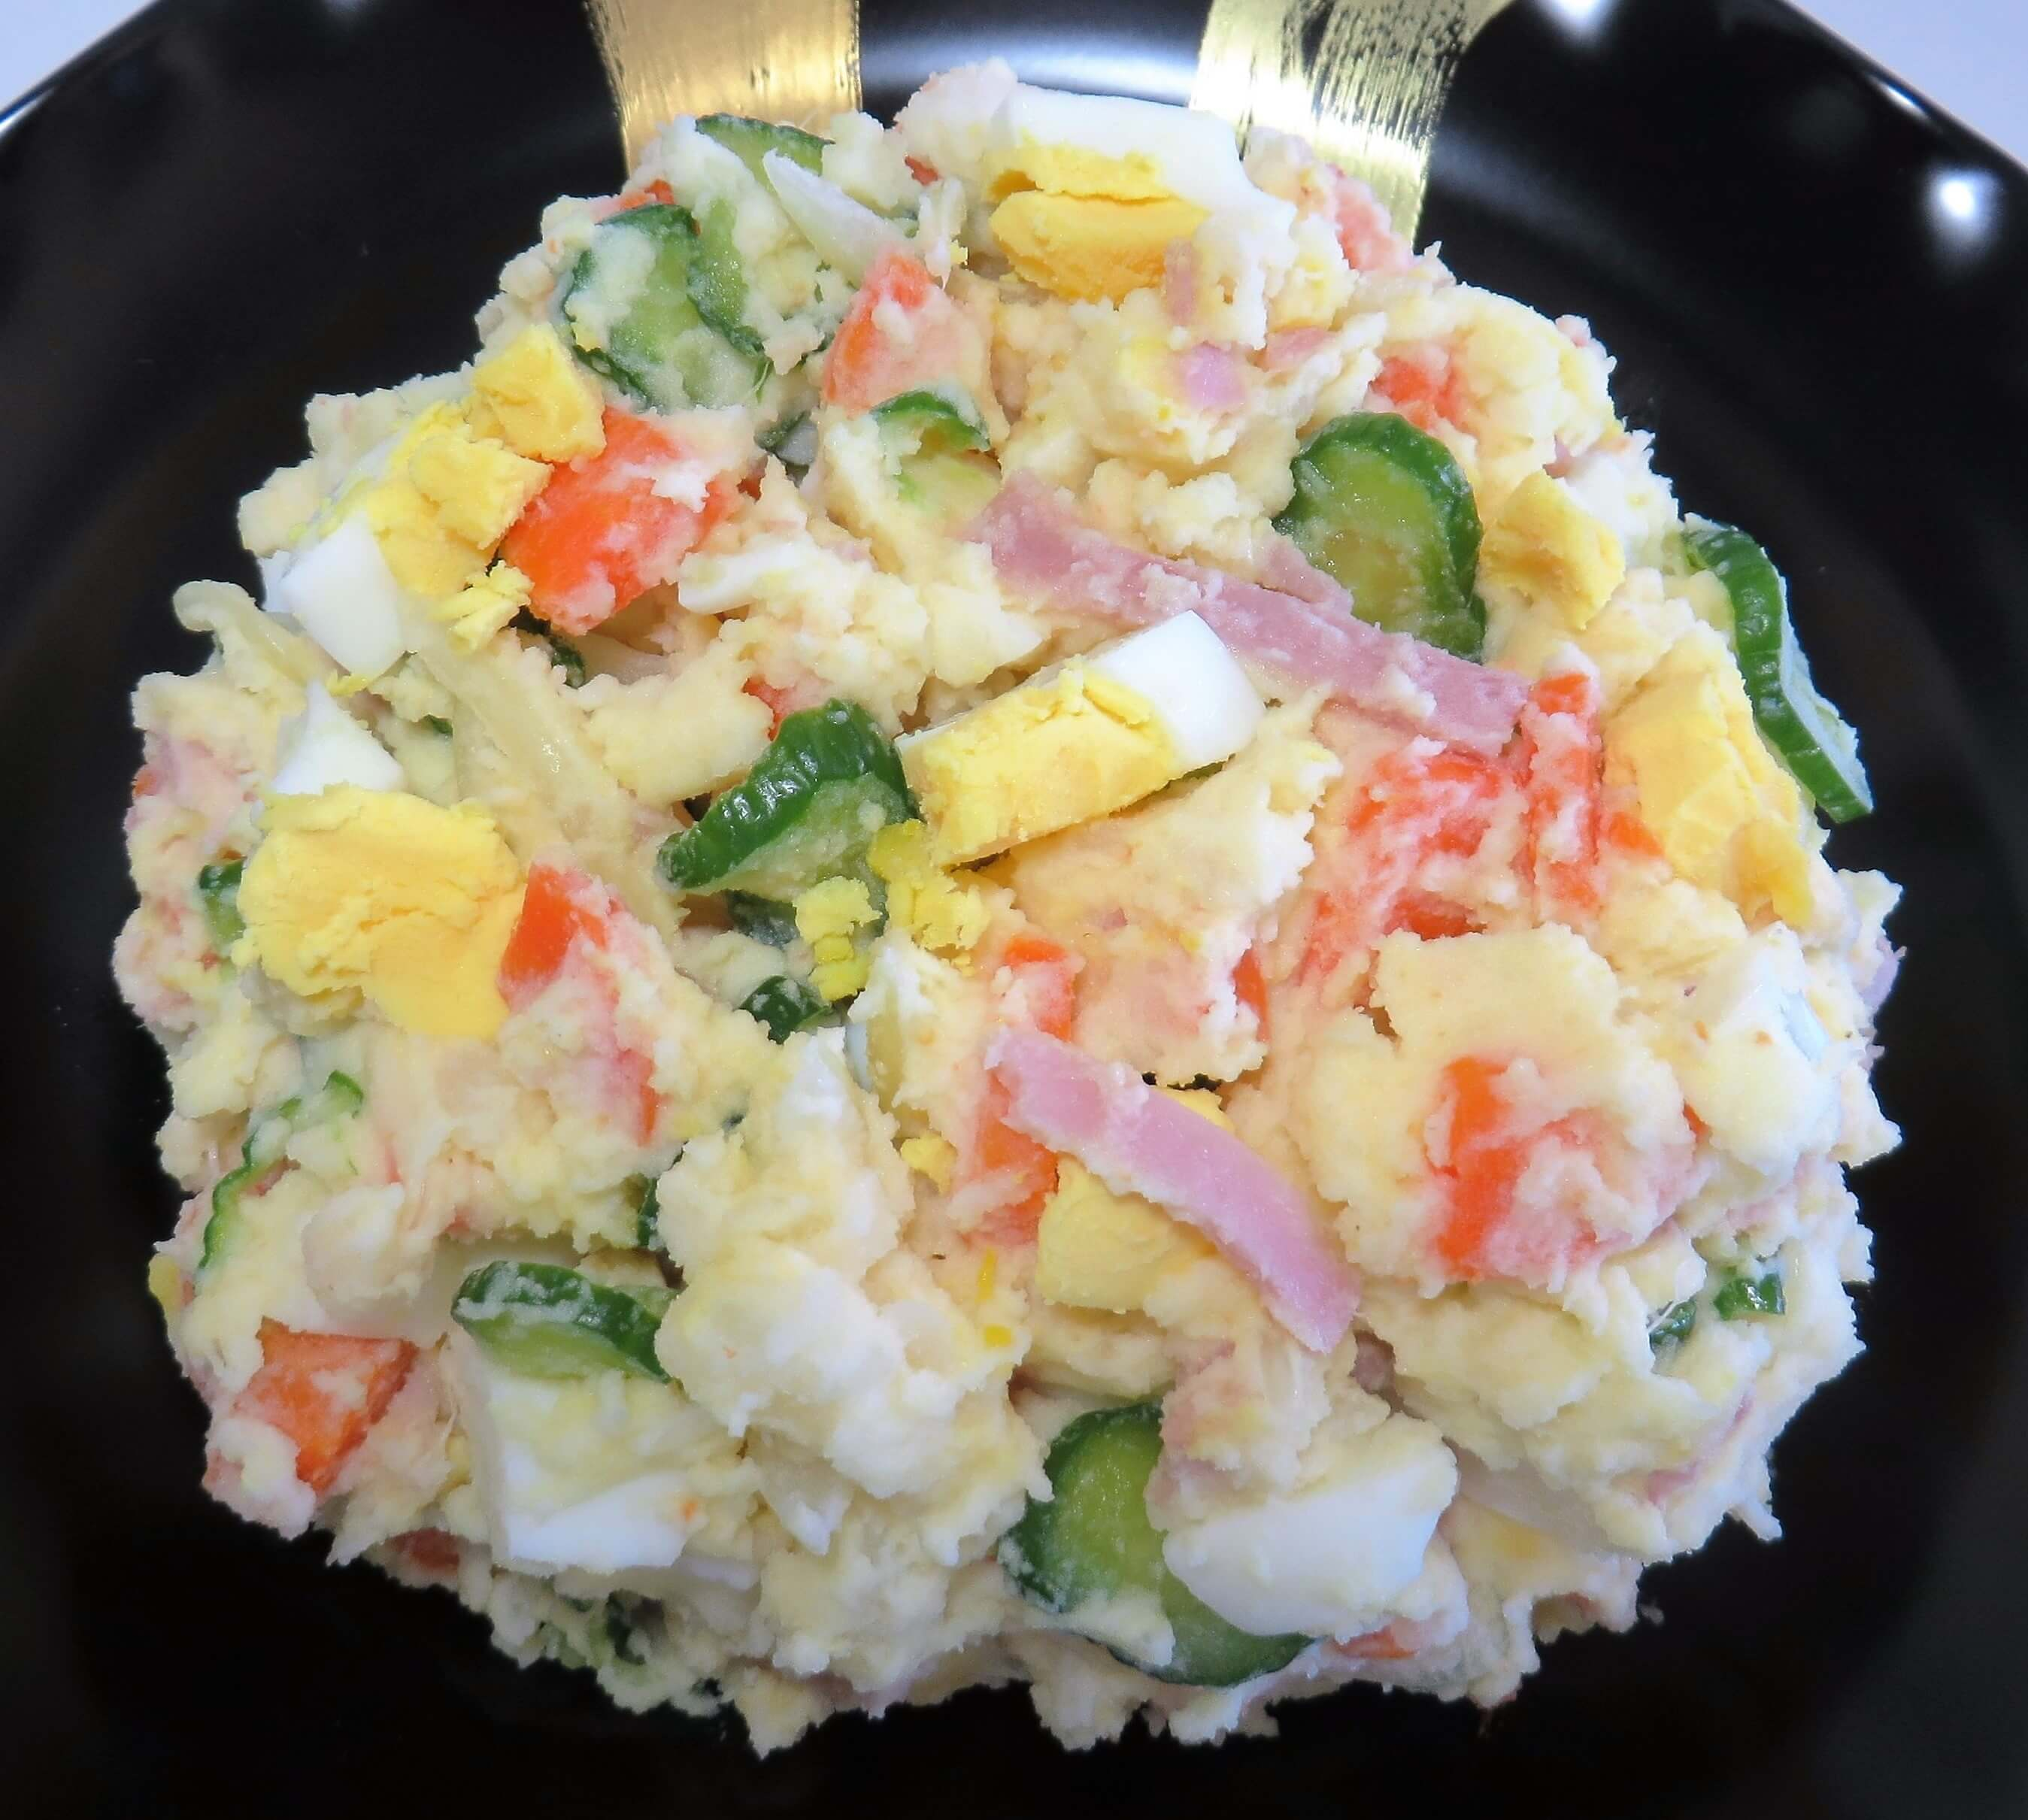 Japanese Potato Salad • ポテトサラダ | Fae's Twist & Tango (fae-magazine.com)